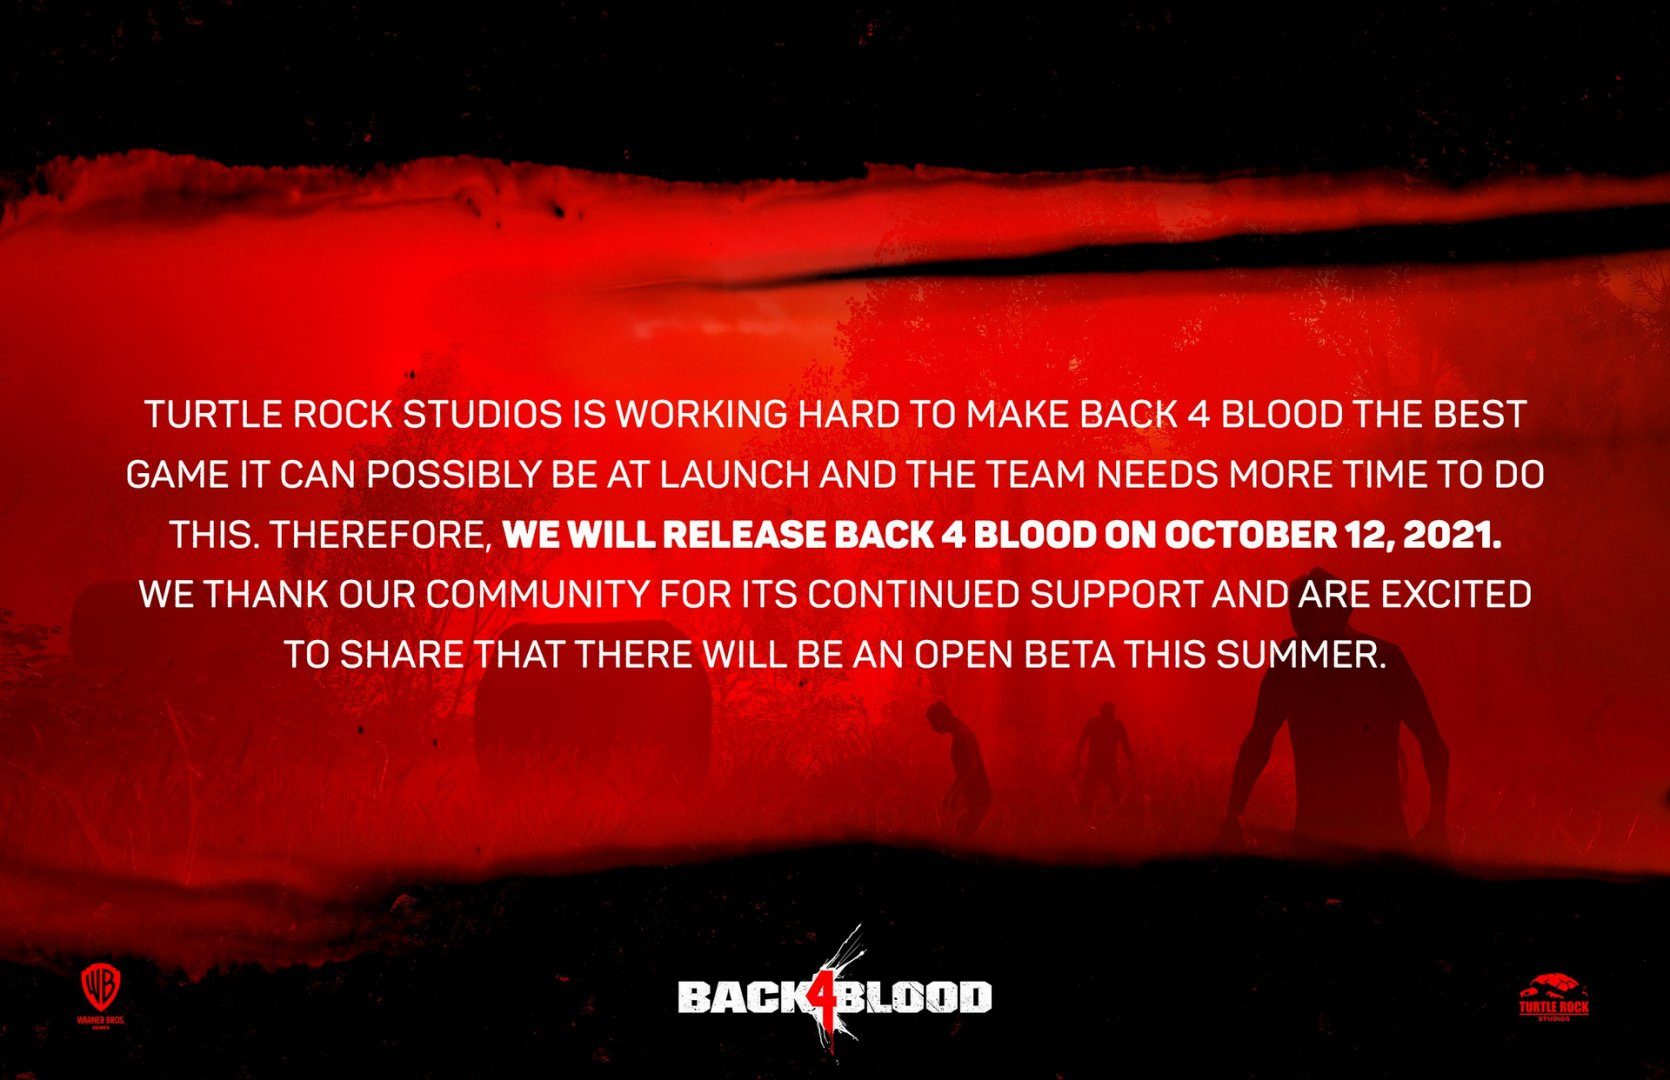 Back 4 Blood delay announcement